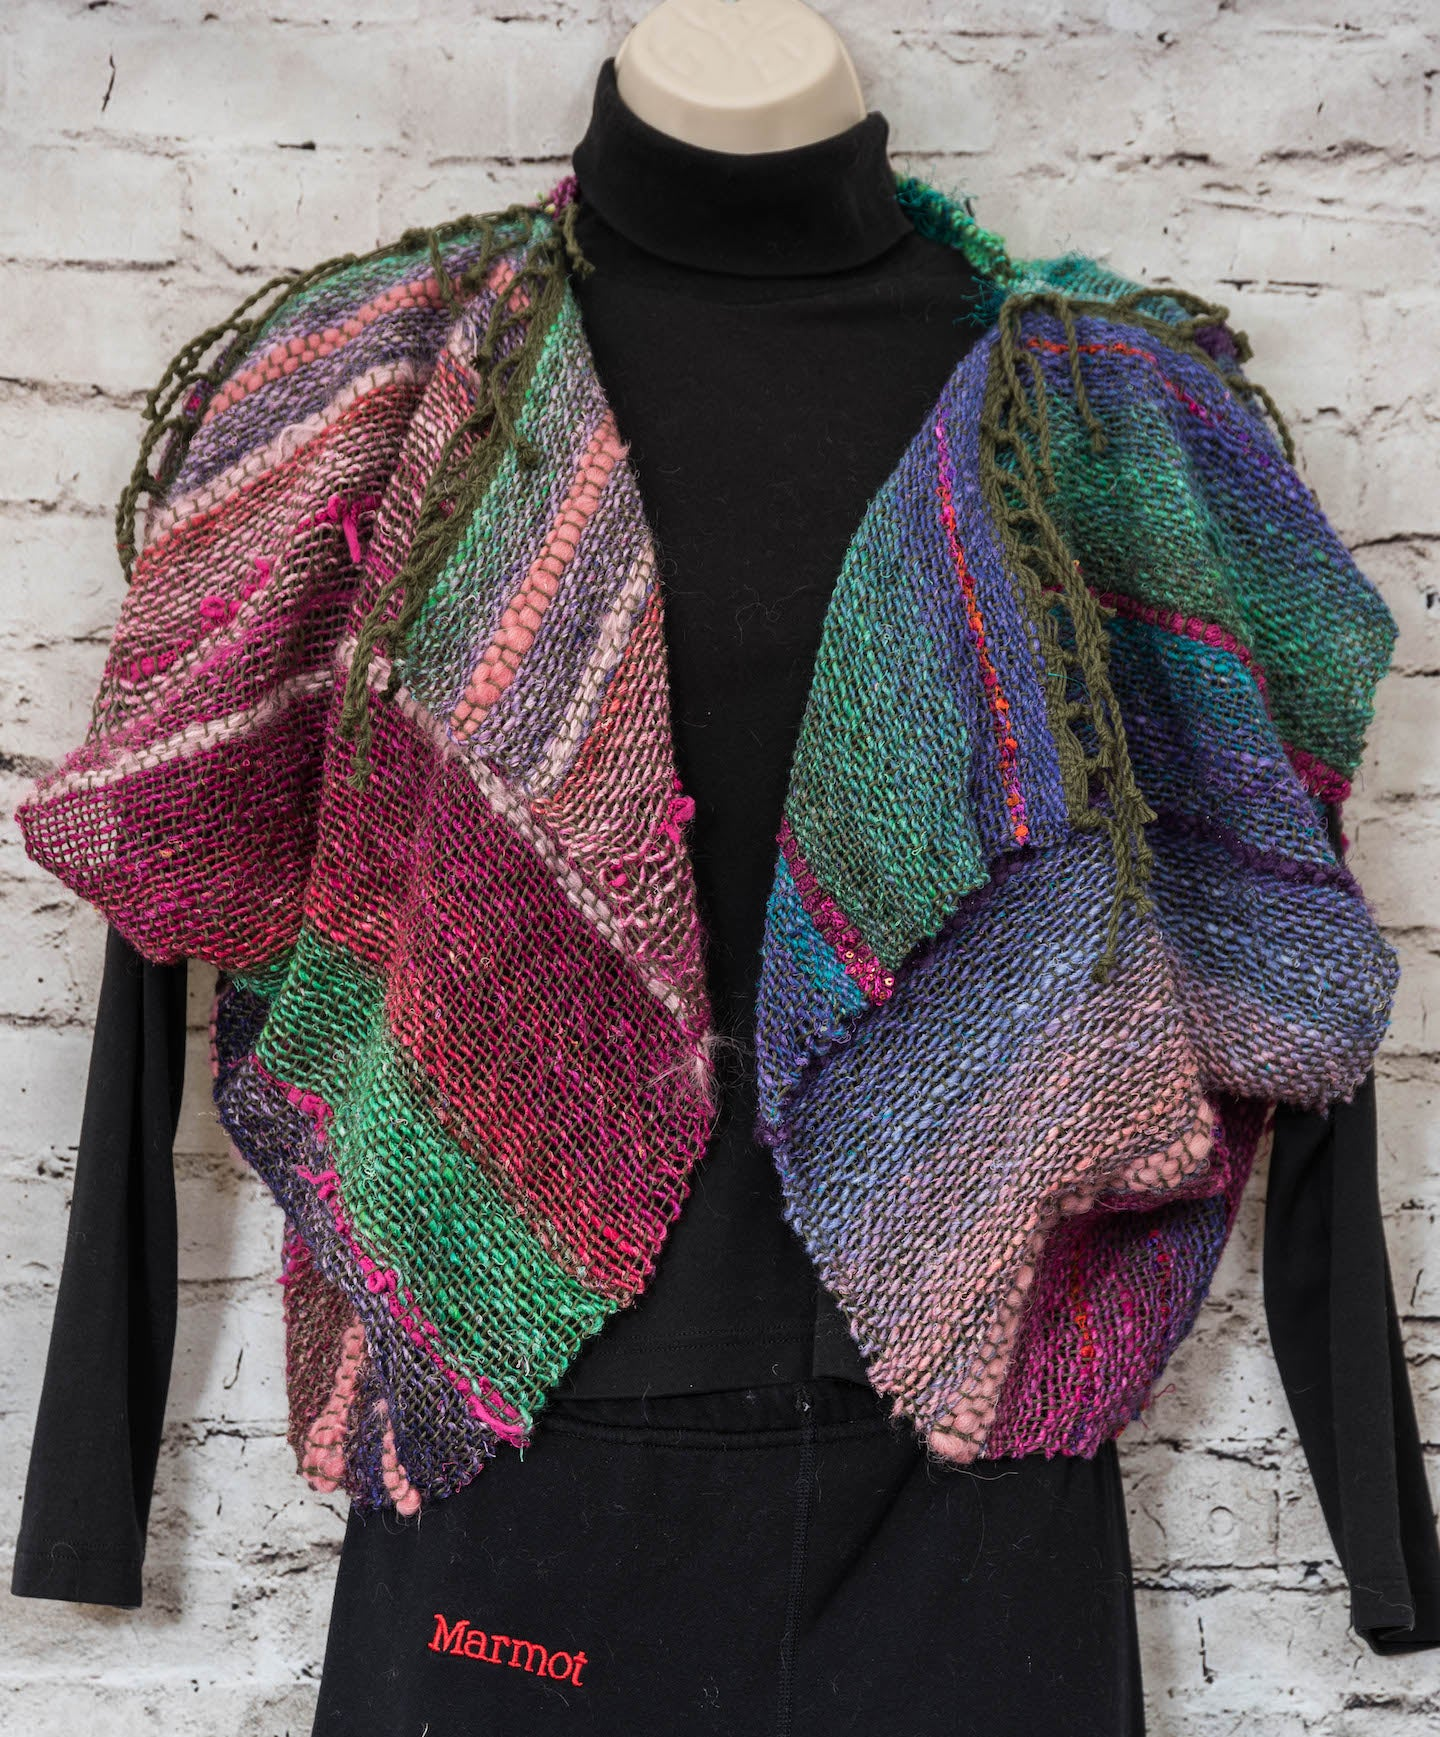 Handwoven Saori Style - Origami Jacket - Multi color pinks/greens/blues